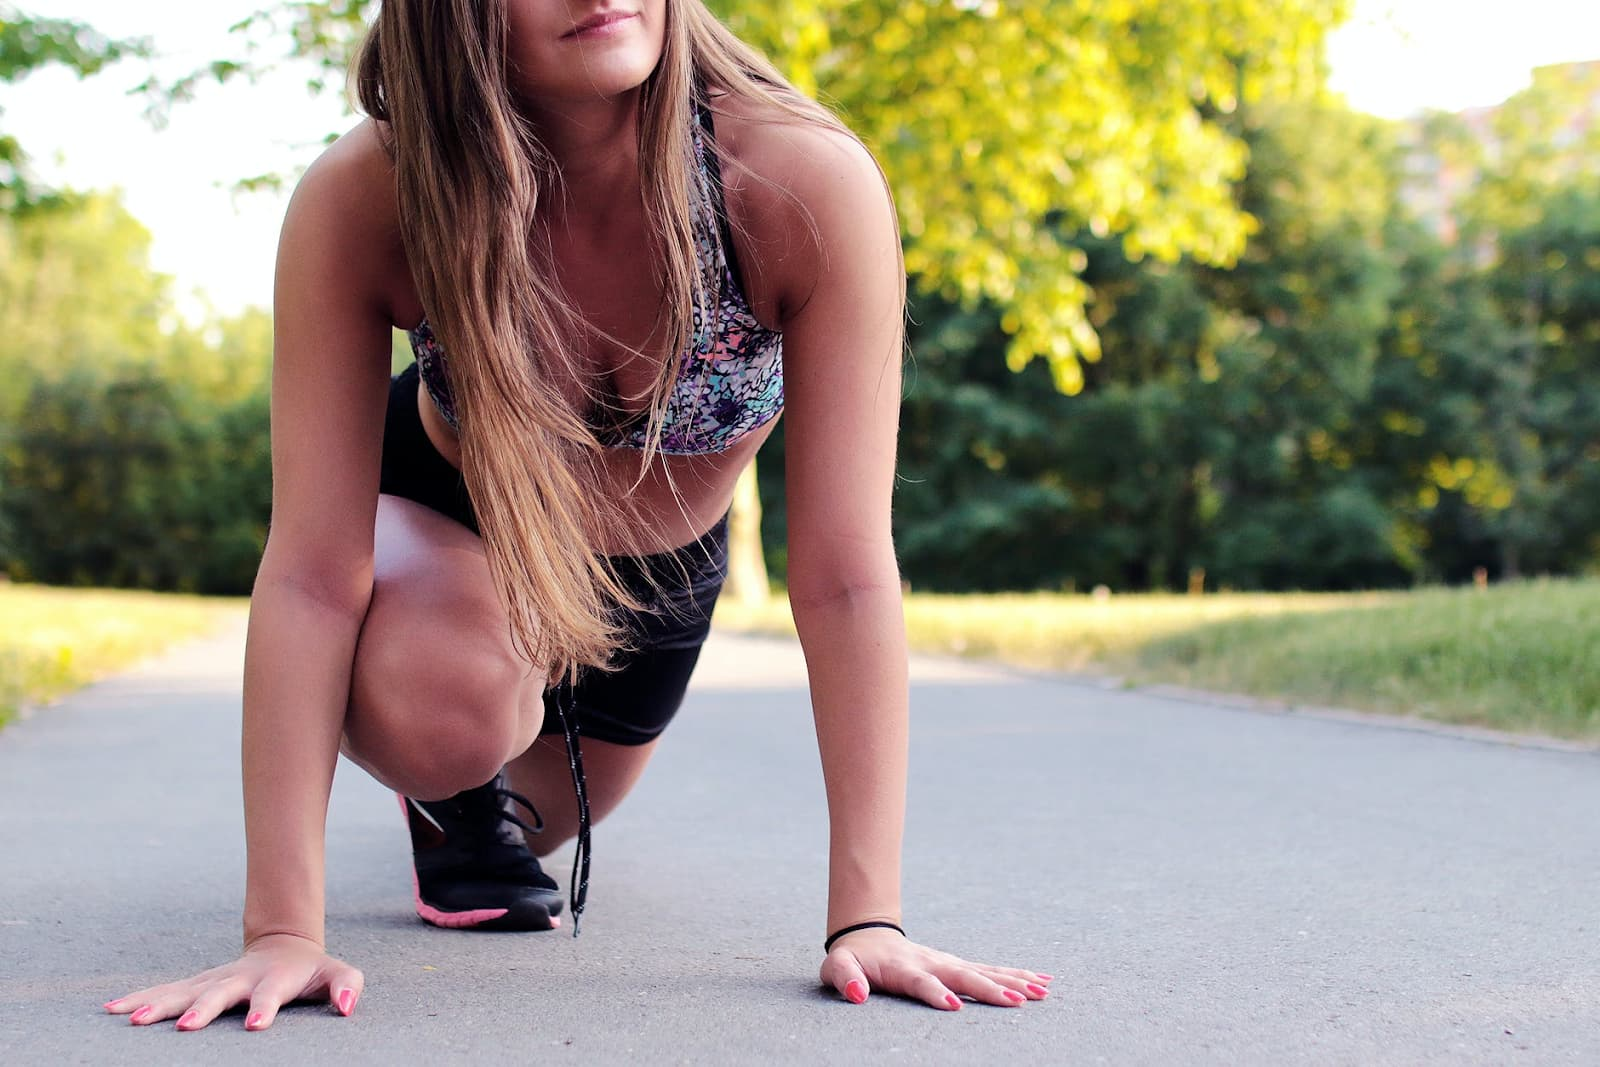 does running burn or build muscle